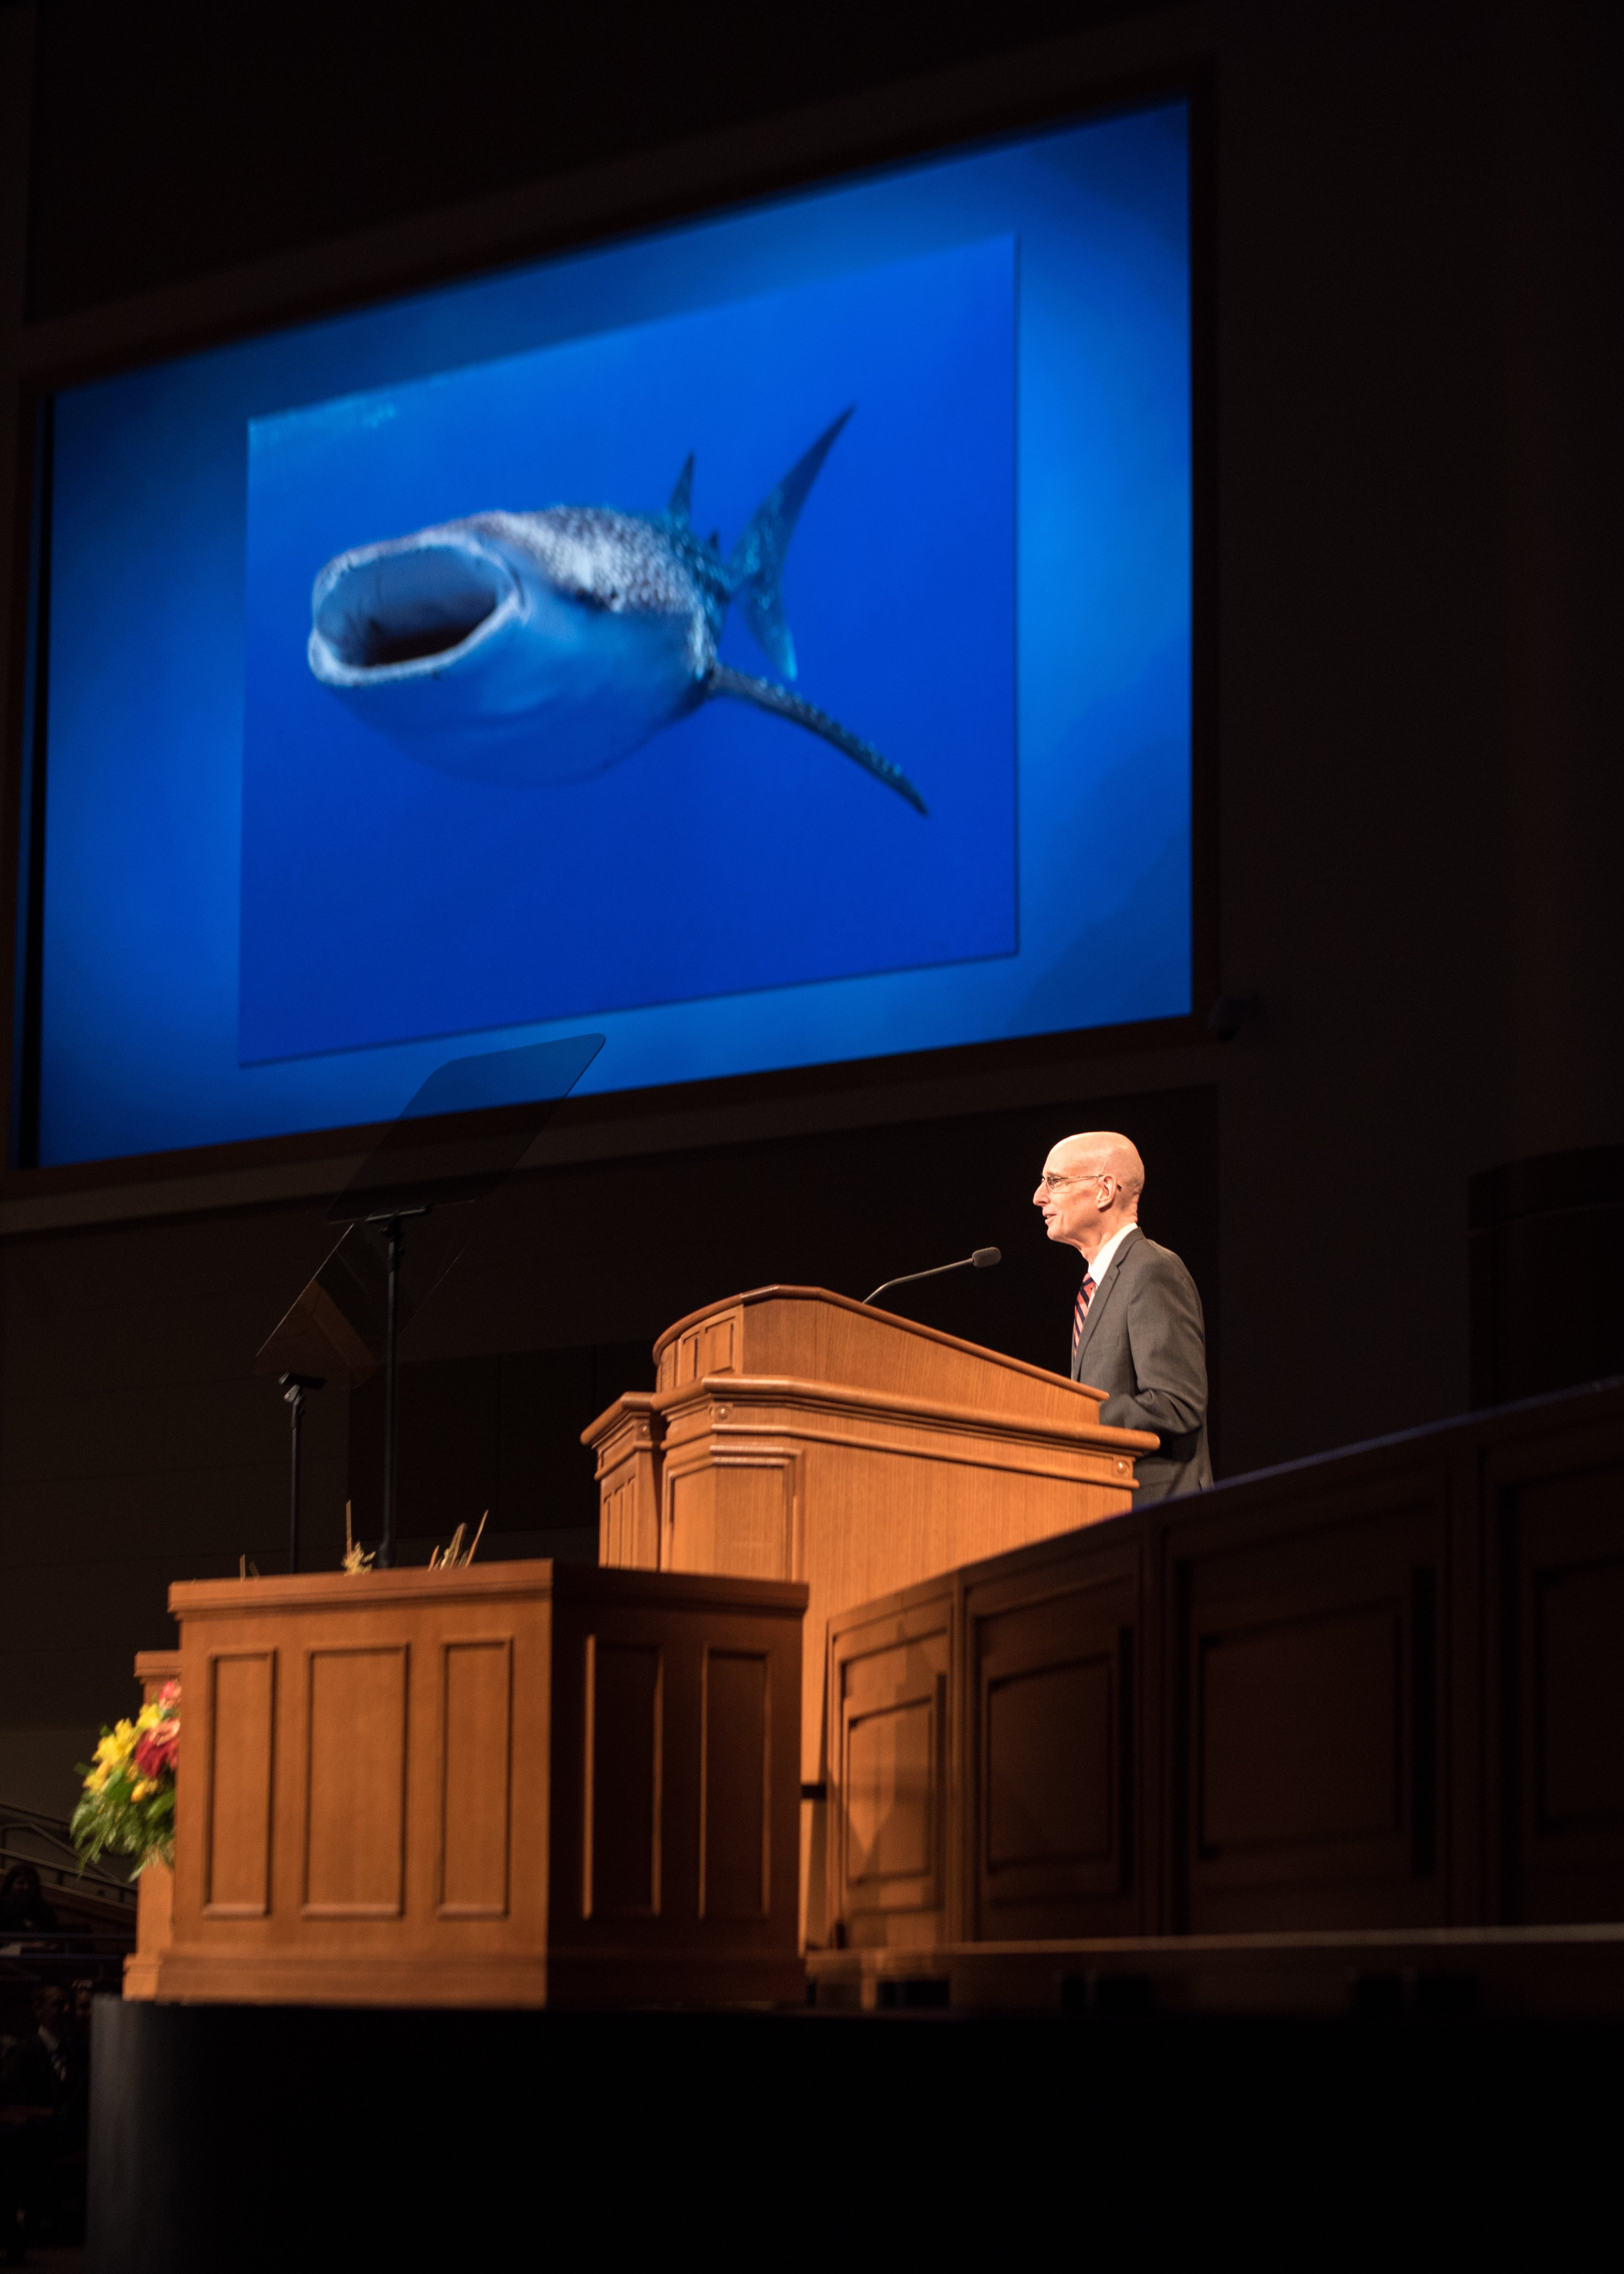 President Henry J. Eyring uses an image of a whale shark to show how it feels to learn to water ski in his BYU-Idaho Devotional on September 24, 2019.